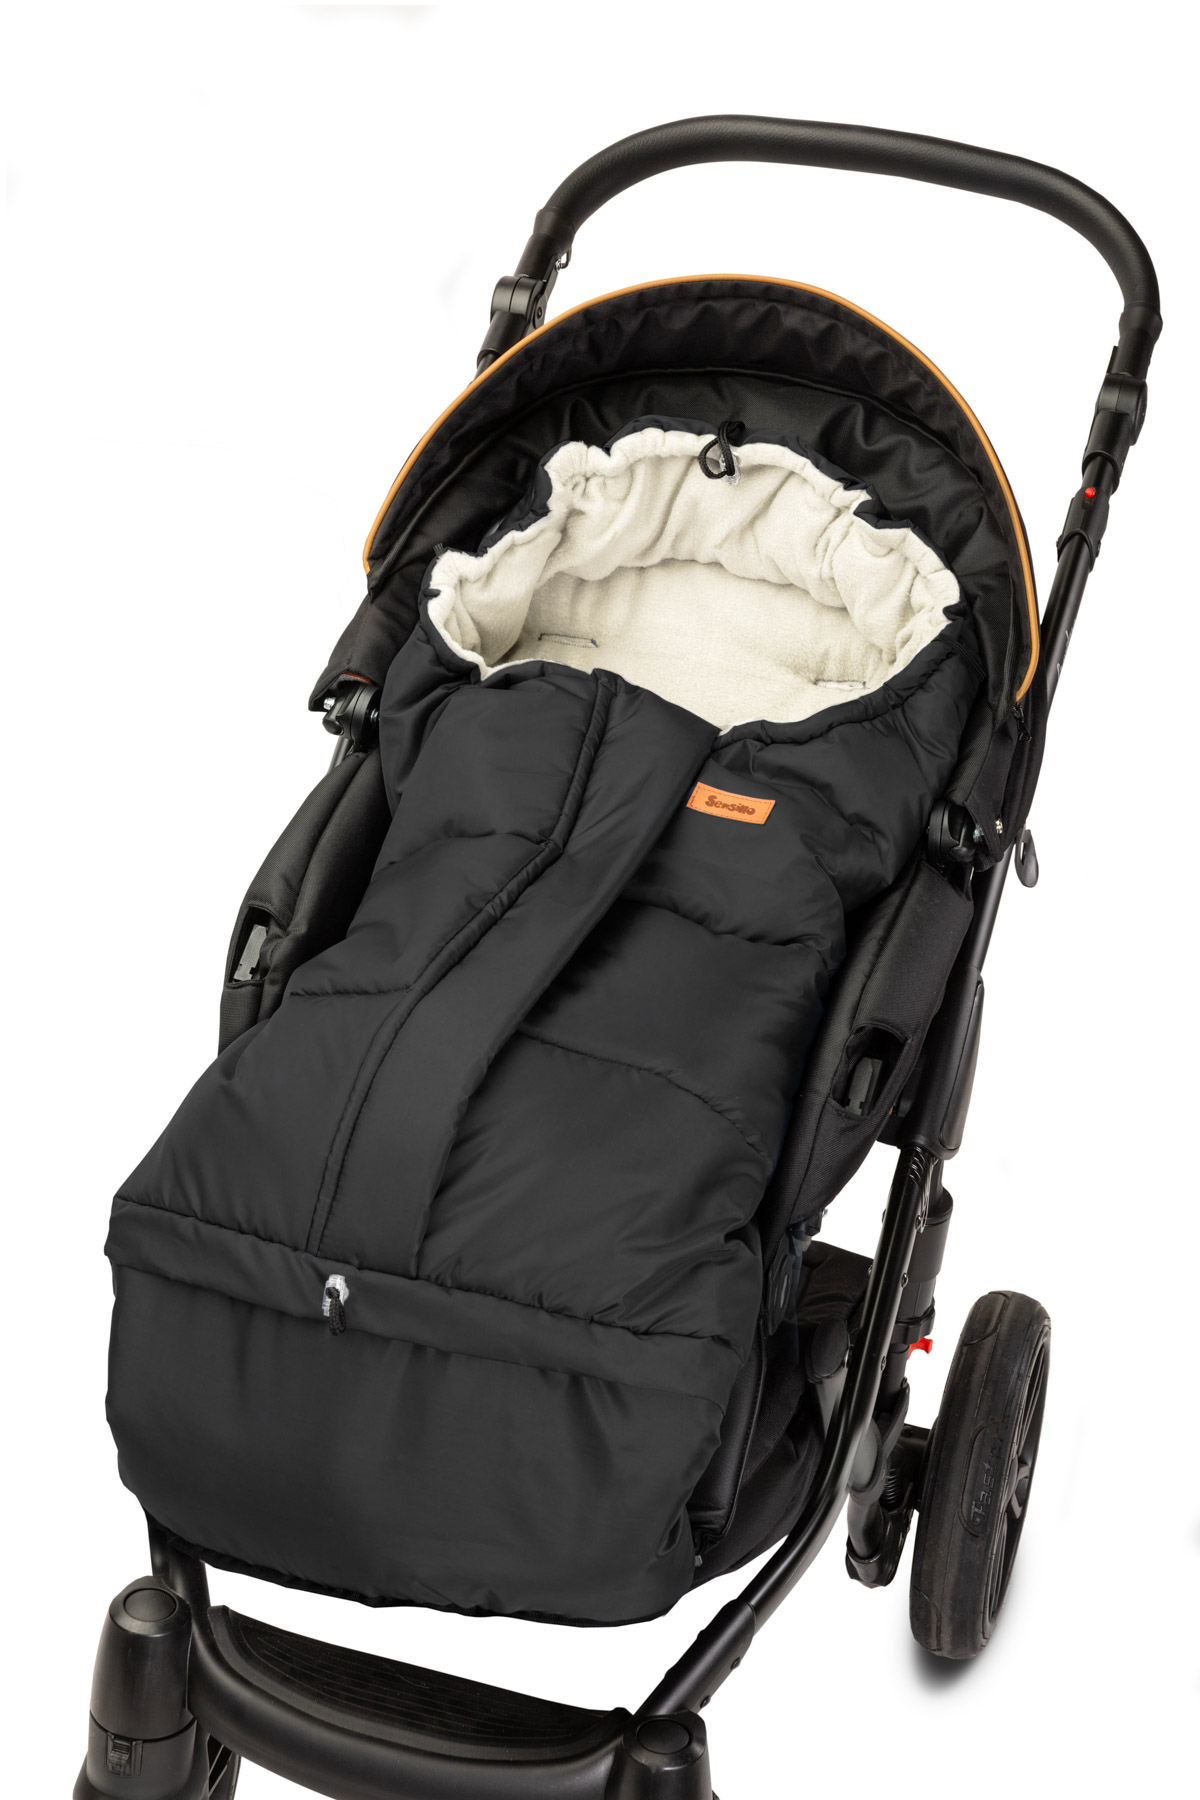 https://www.sensillo.pl/wp-content/uploads/2015/12/combi_polar_black_beige03.jpg